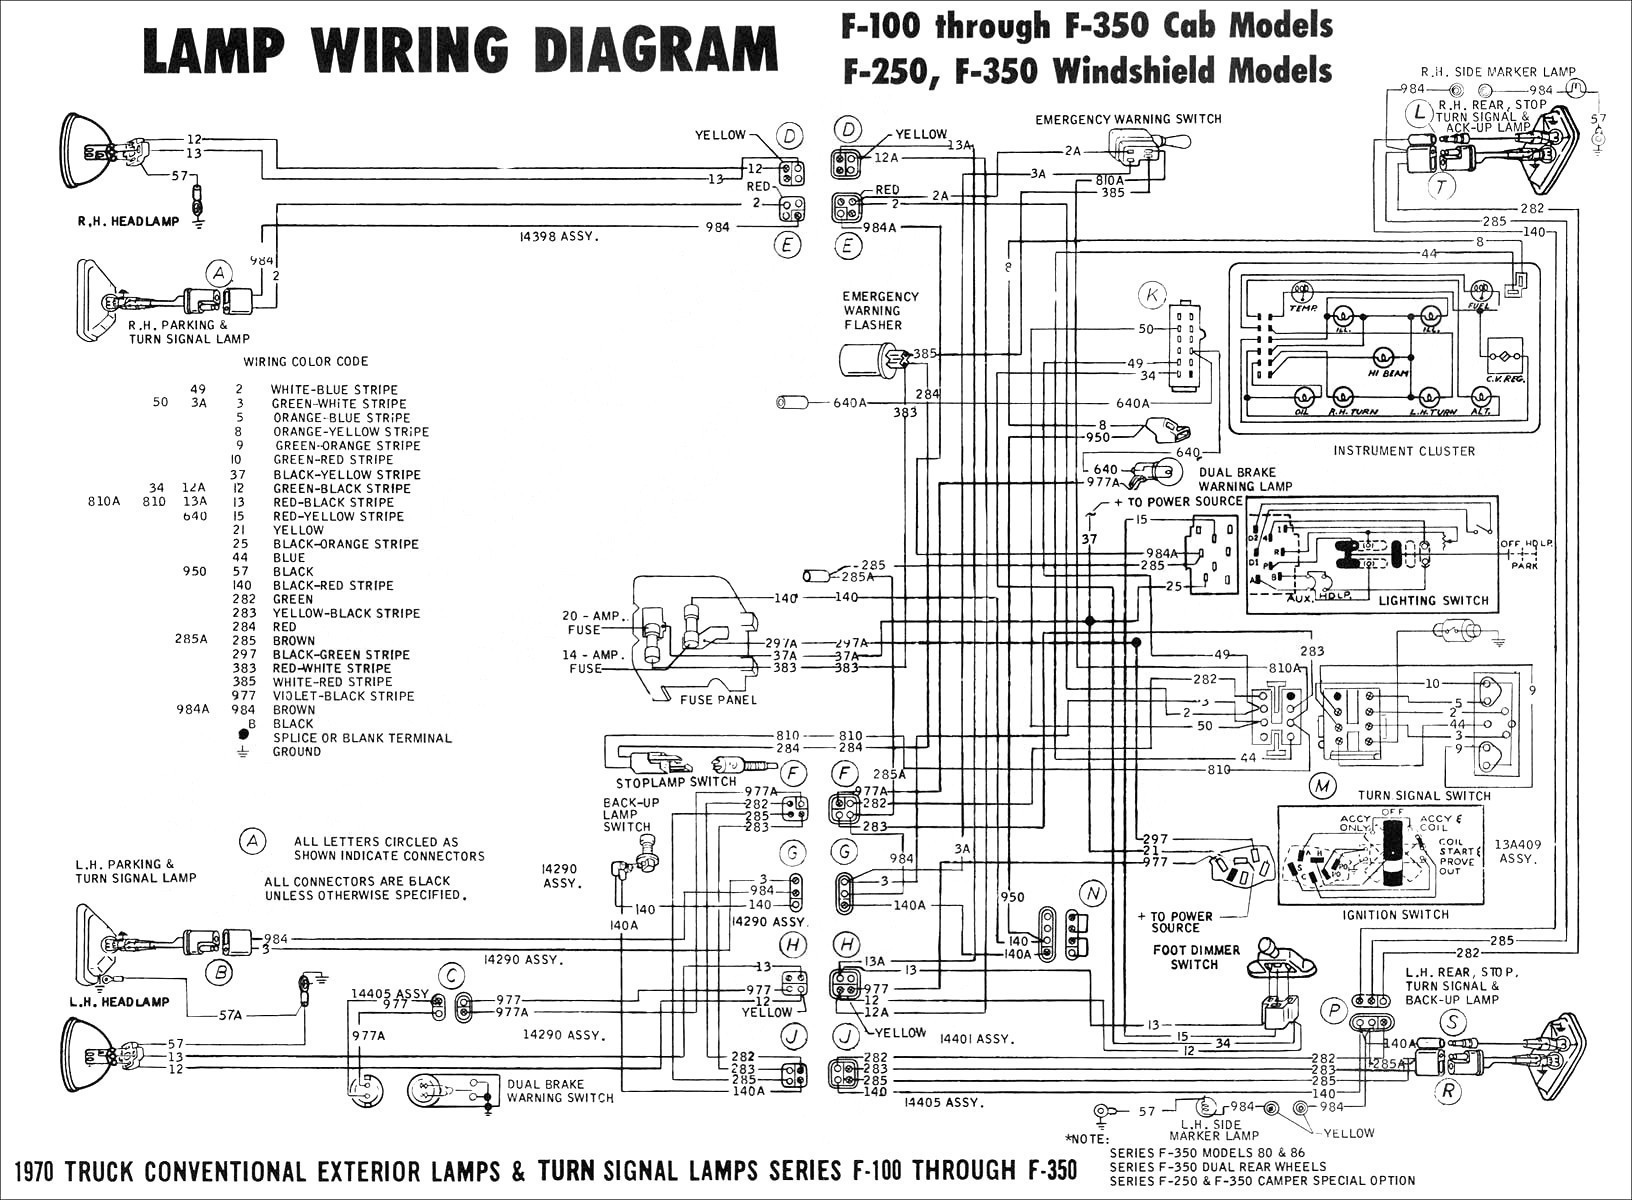 Highlander Fuse Box Diagram 2013 Toyota Prius Opinions About Wiring 2006 Trusted Diagrams U2022 Rh Radkan Co